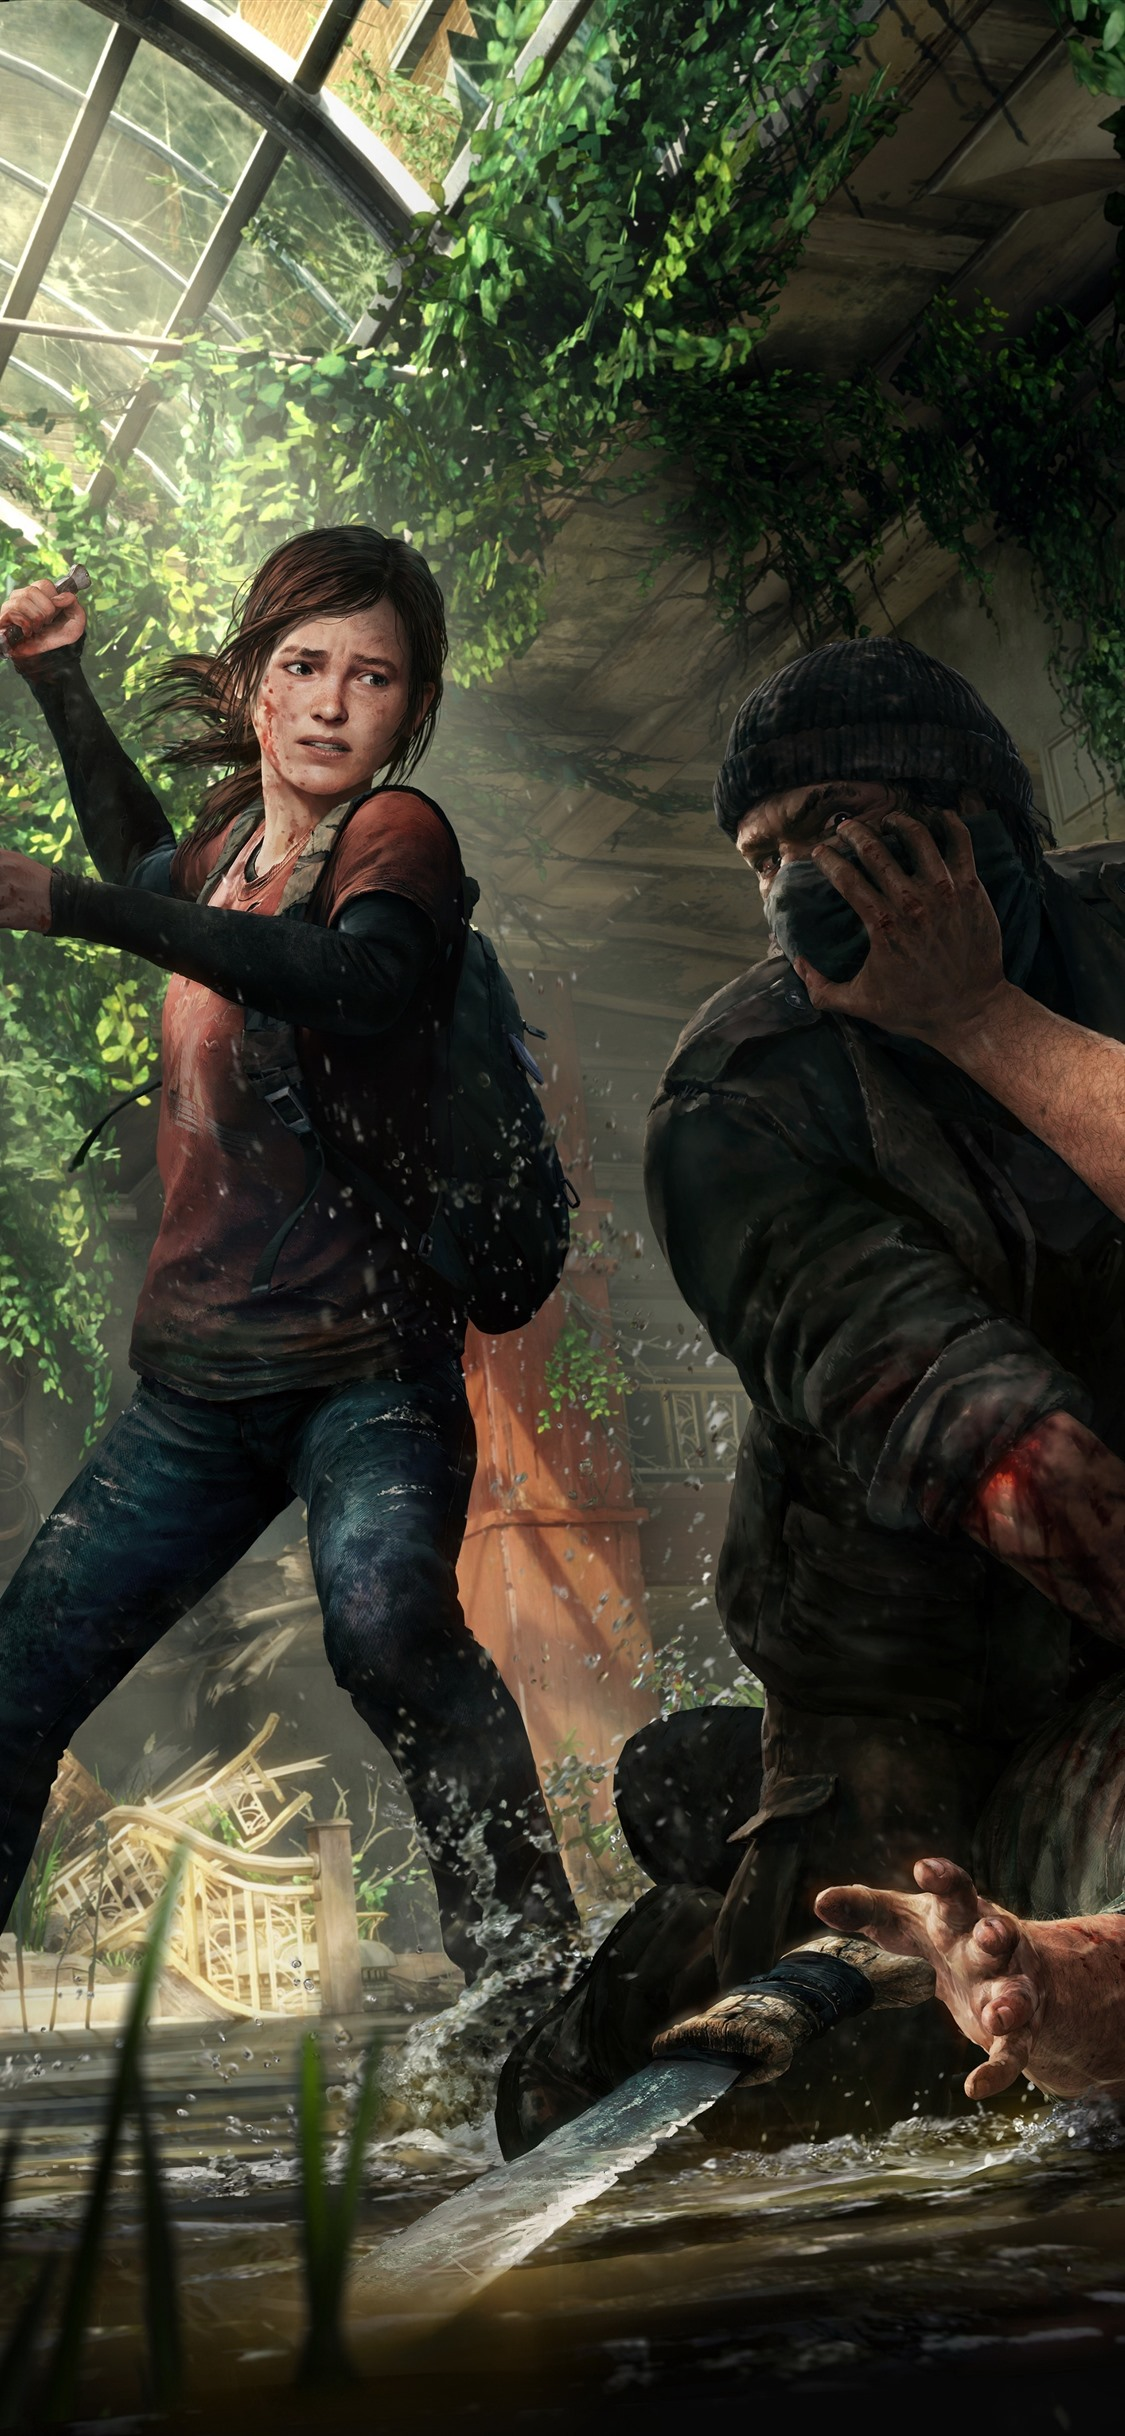 Download This Wallpaper Last Of Us 19222 Hd Wallpaper